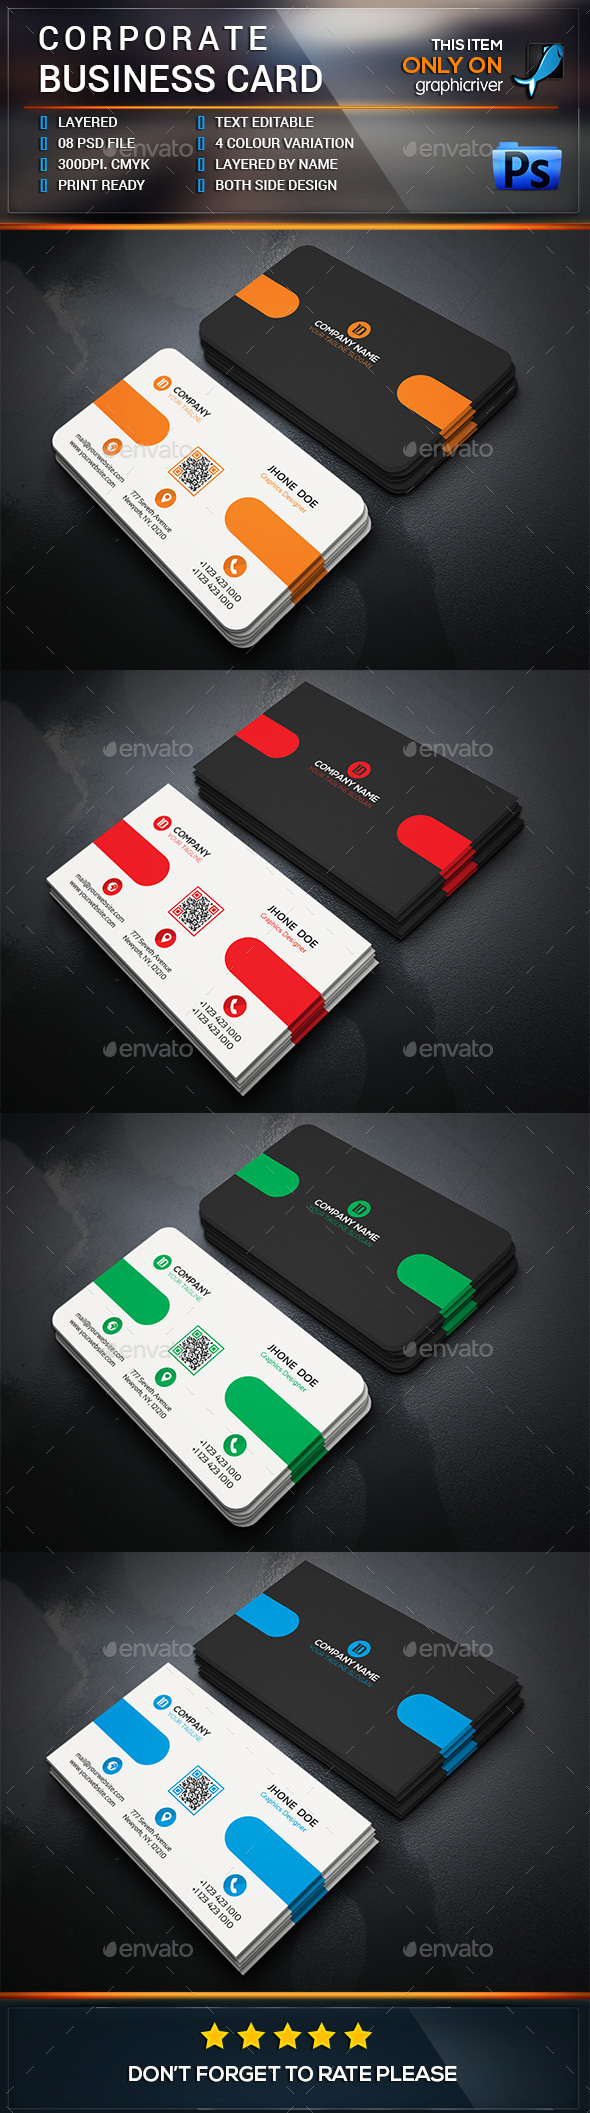 Corporate Business Card Design - Business Cards Print Templates